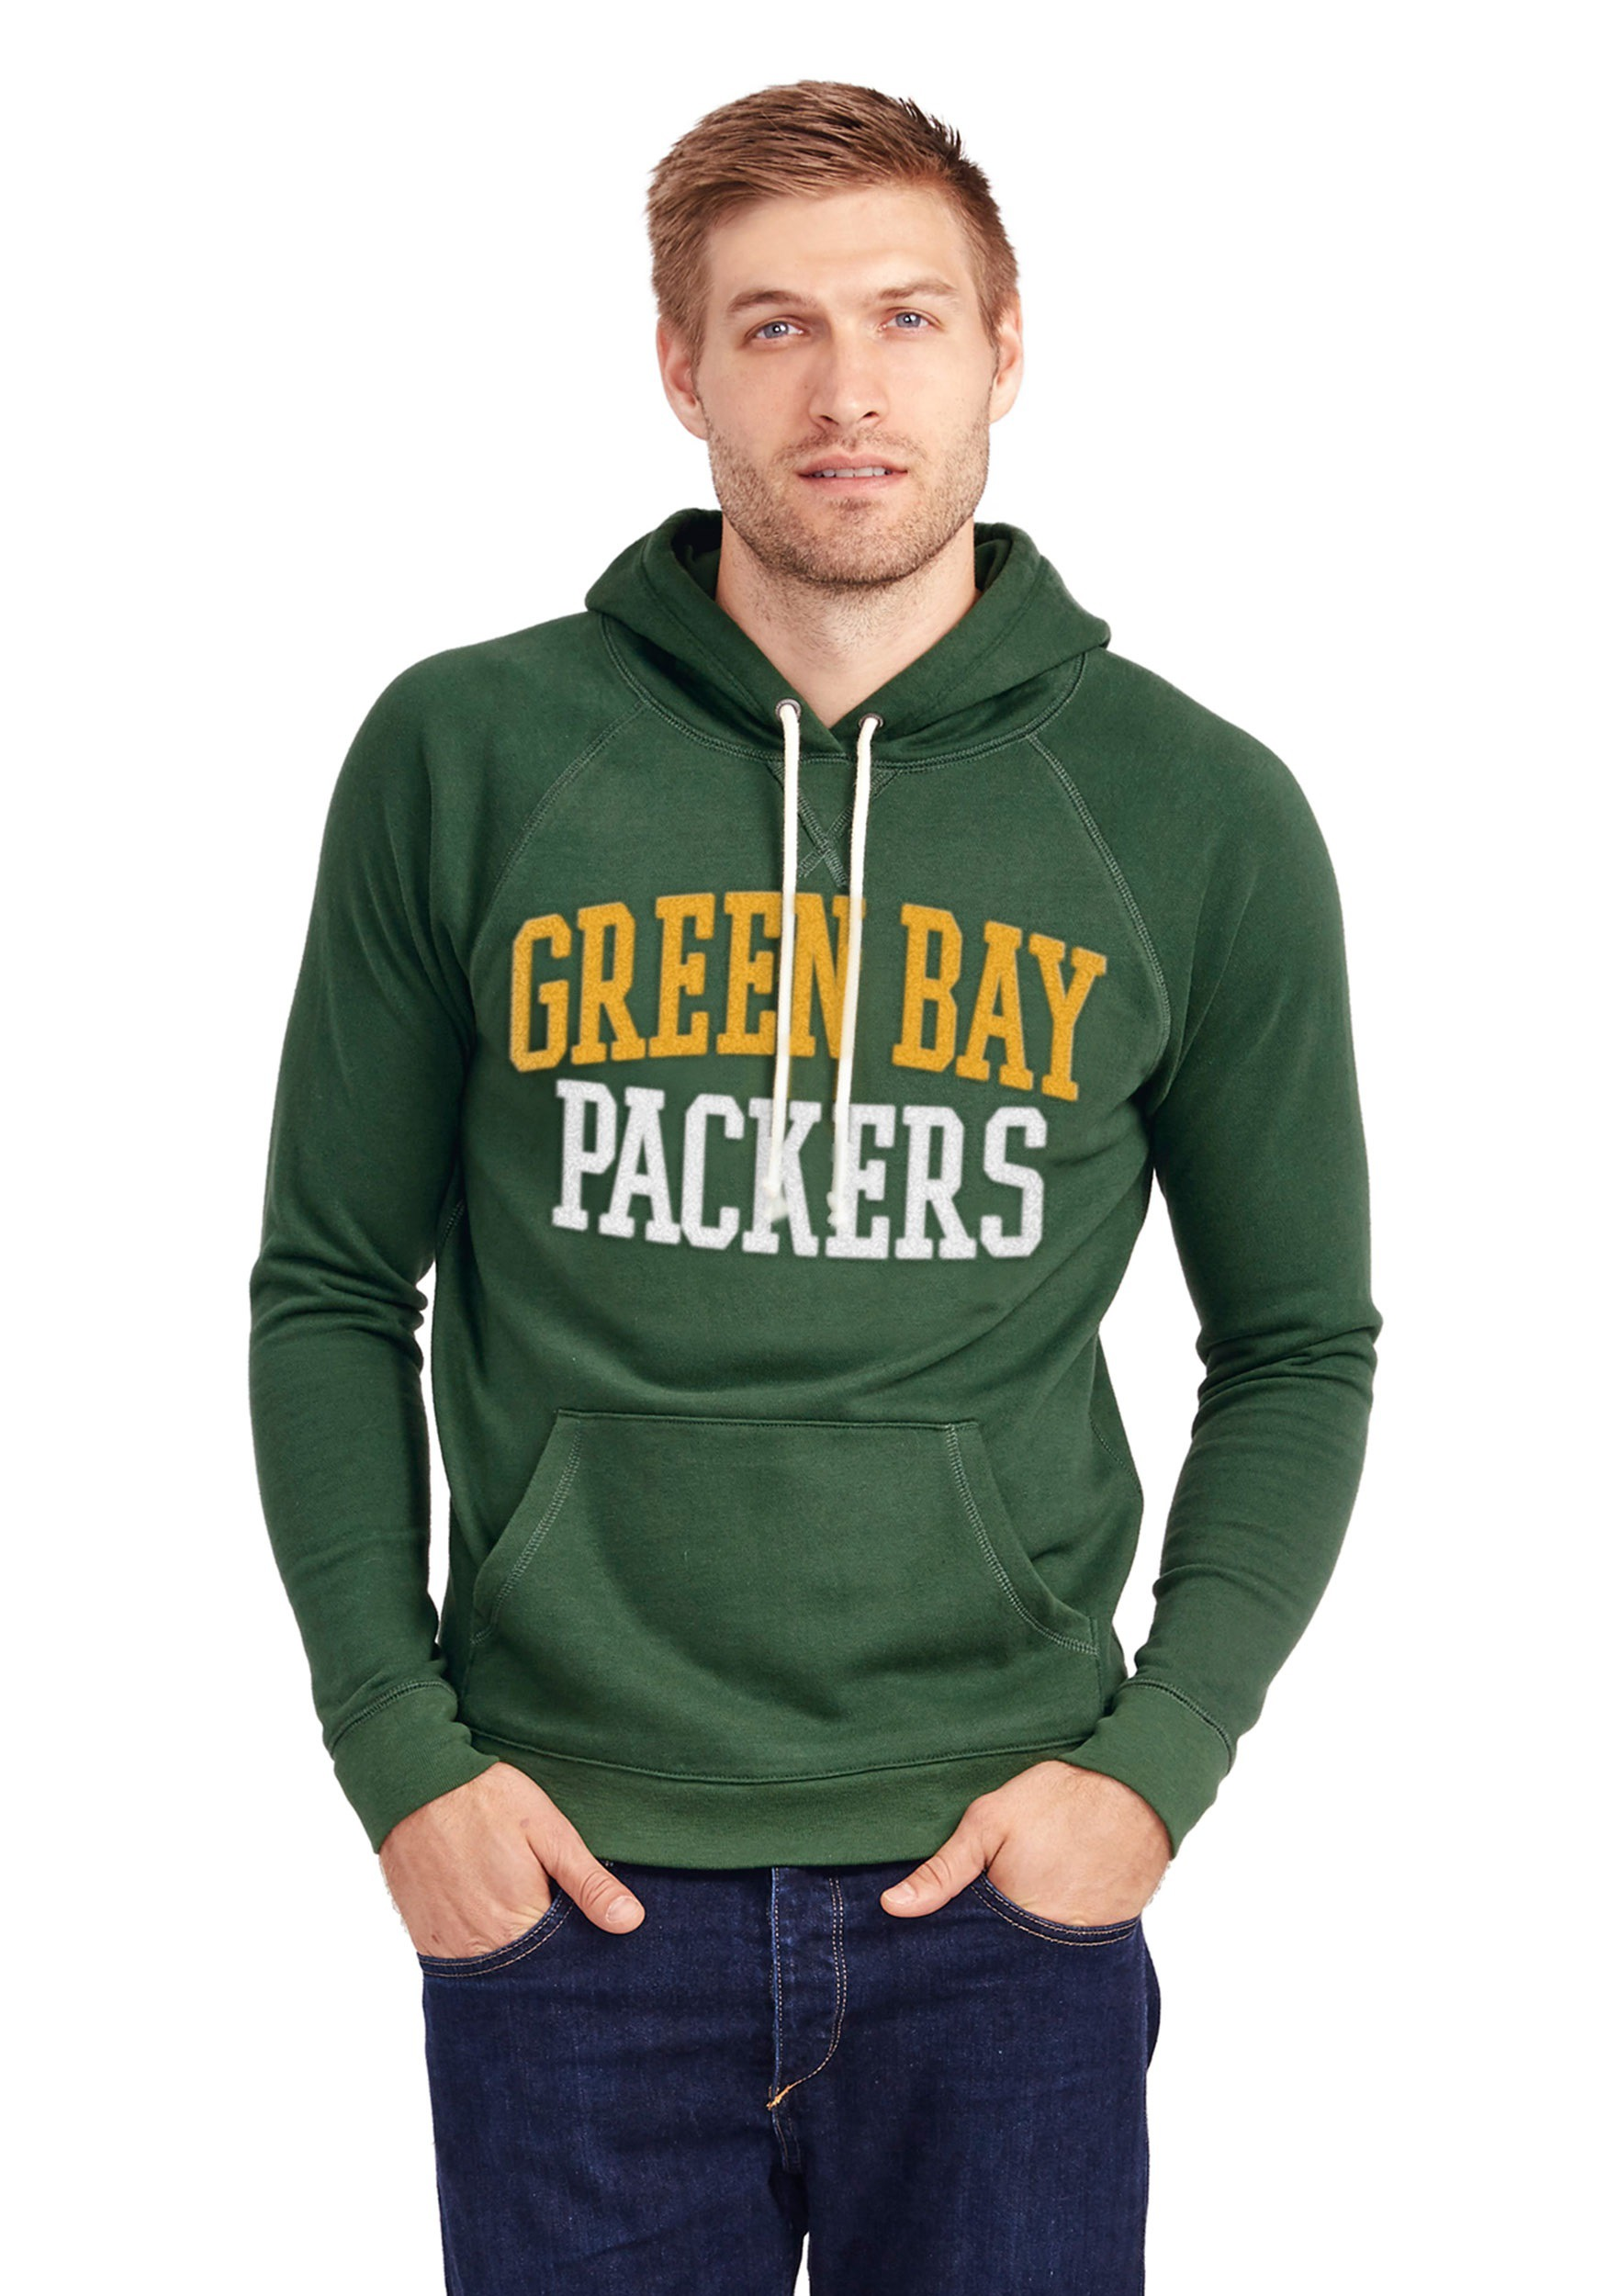 59f7e45e2 Green Bay Packers Half Time Hoodie for Men